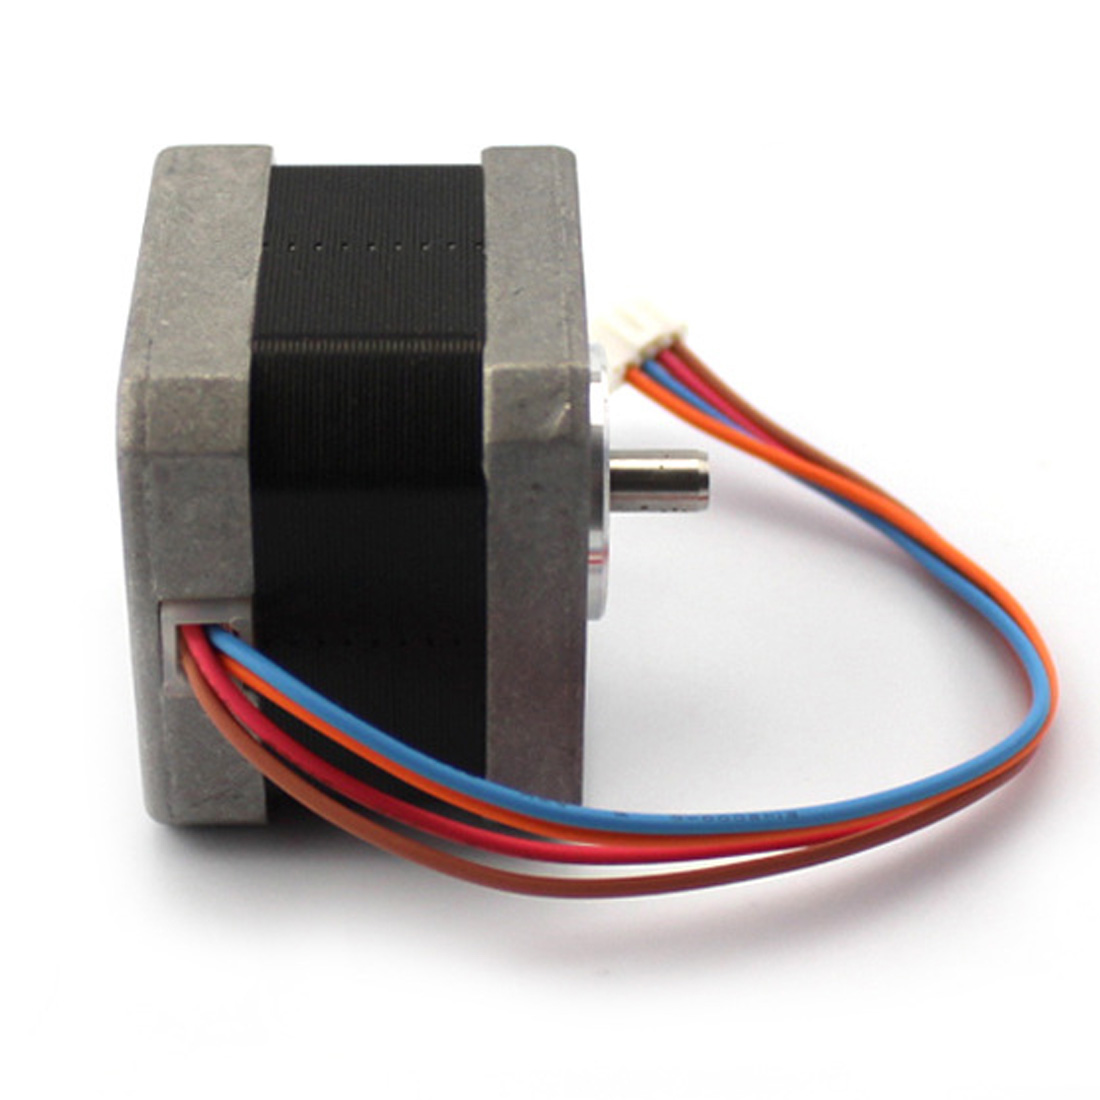 1PCS 4-lead Nema17 Stepper Motor 42 Motor Nema 17 Motor 1.5A 38mm (17HS4401) For 3D Printer Motor and CNC XYZ 5pcs 4 lead nema17 stepper motor 42 motor nema 17 motor 42bygh 38mm 1 5a 17hs4401 motor for cnc xyz 3d printer motor